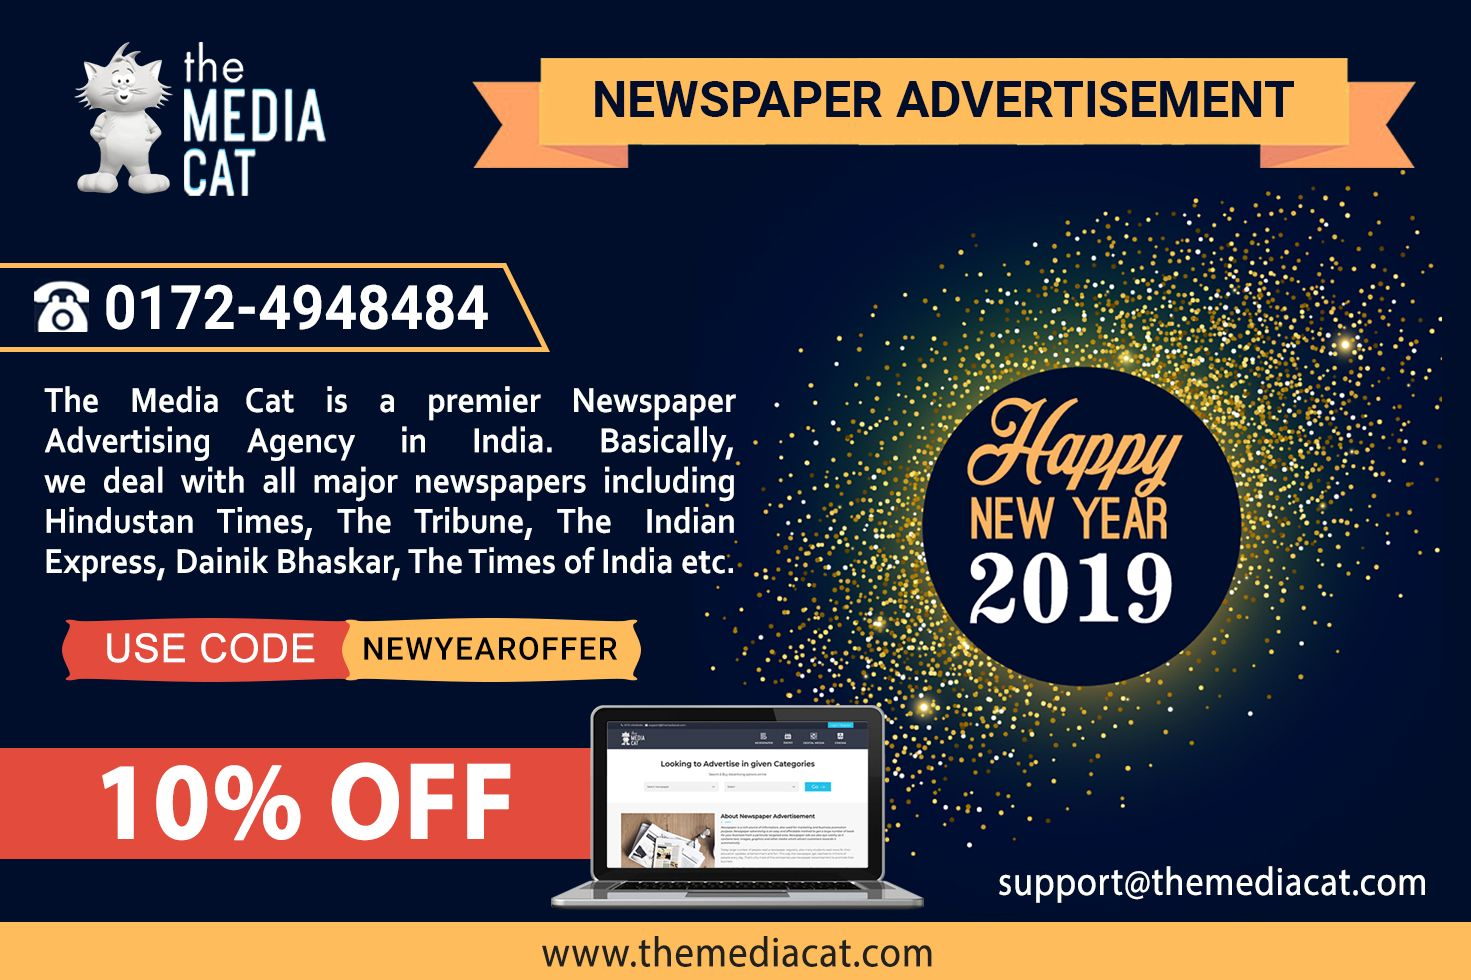 The Newspaper Advertisement has a serious impact on the